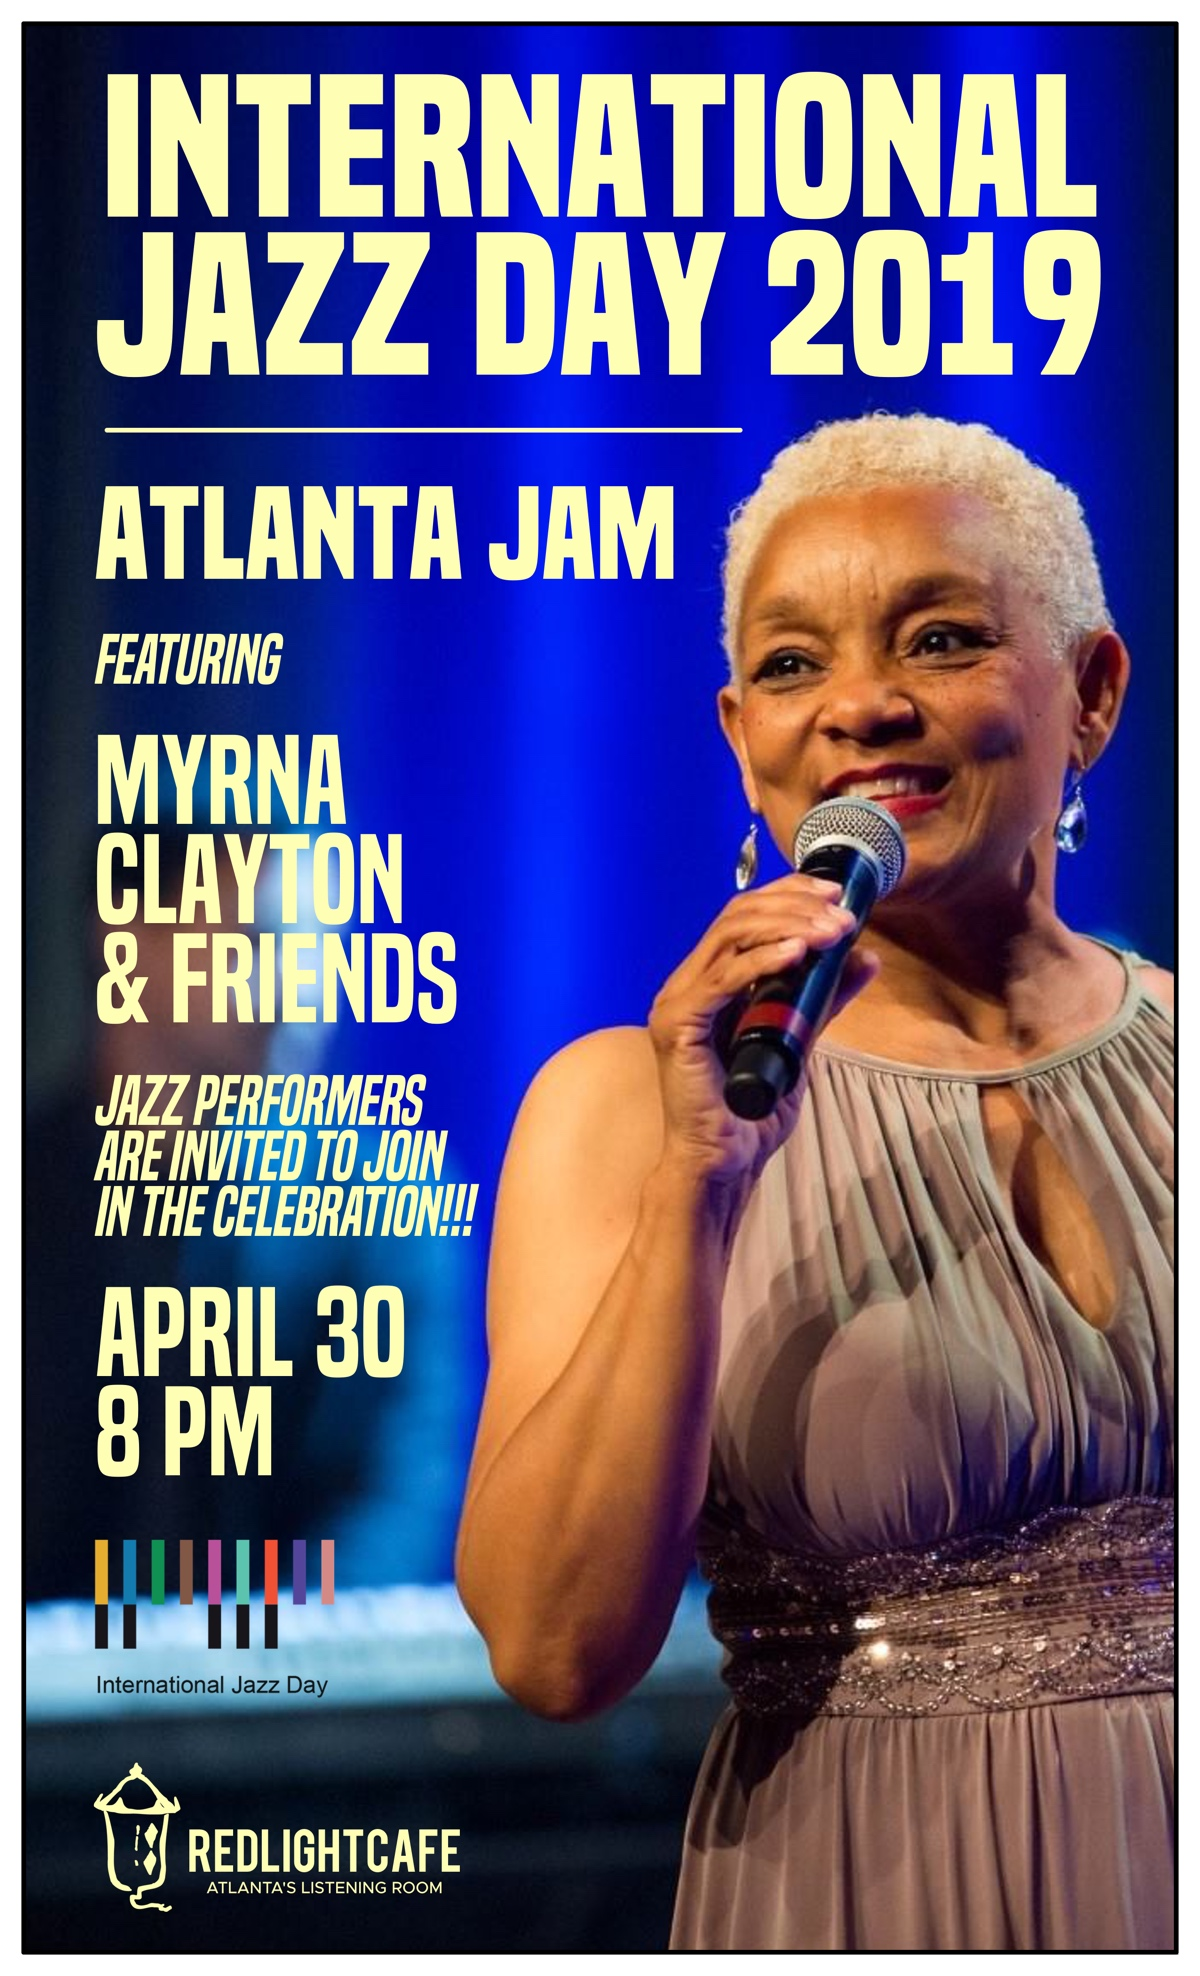 International Jazz Day 2019: Atlanta Jam — April 30, 2019 — Red Light Café, Atlanta, GA